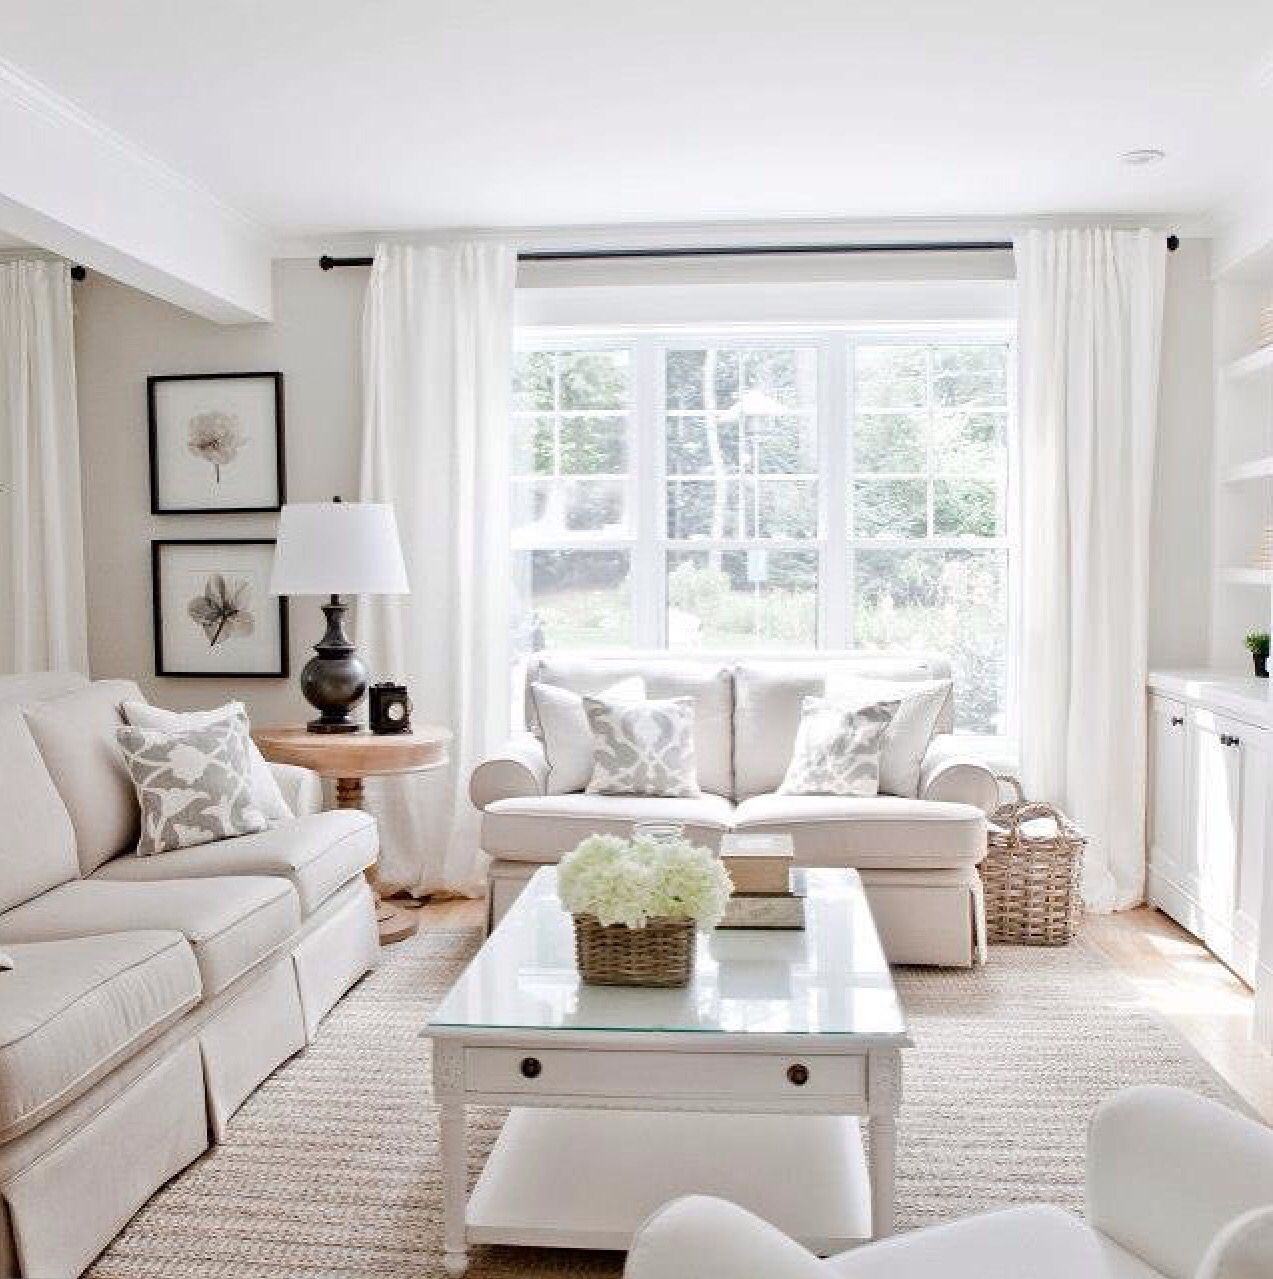 Gray And White Transitional Rustic Living Room With: Transitional Design, Modern Furnishings White Interior